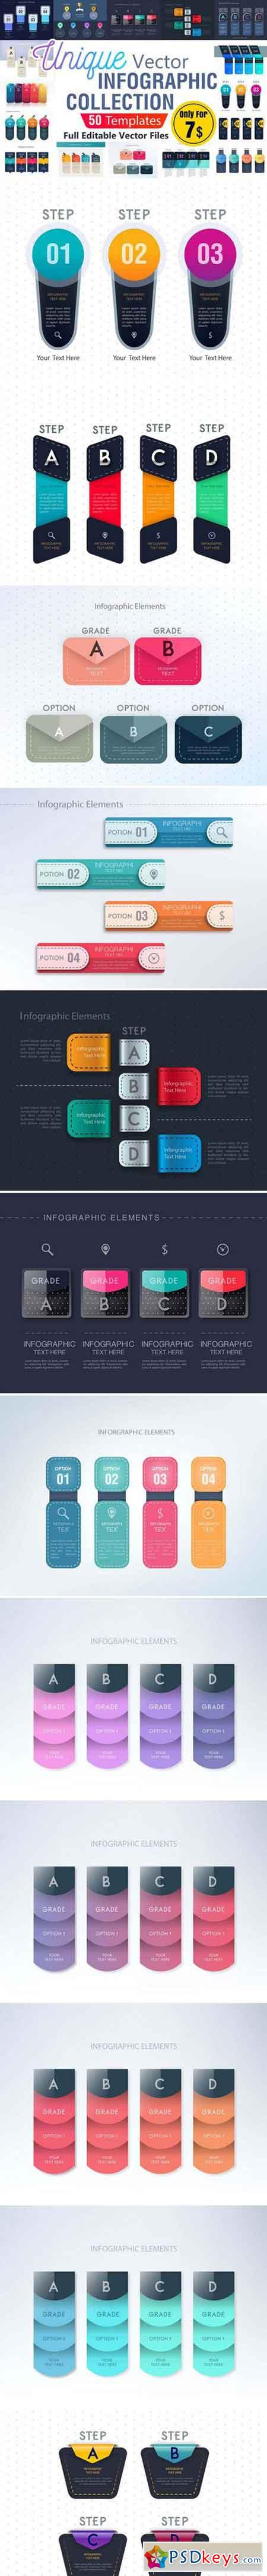 Infographic Template Collection - AI 2184985